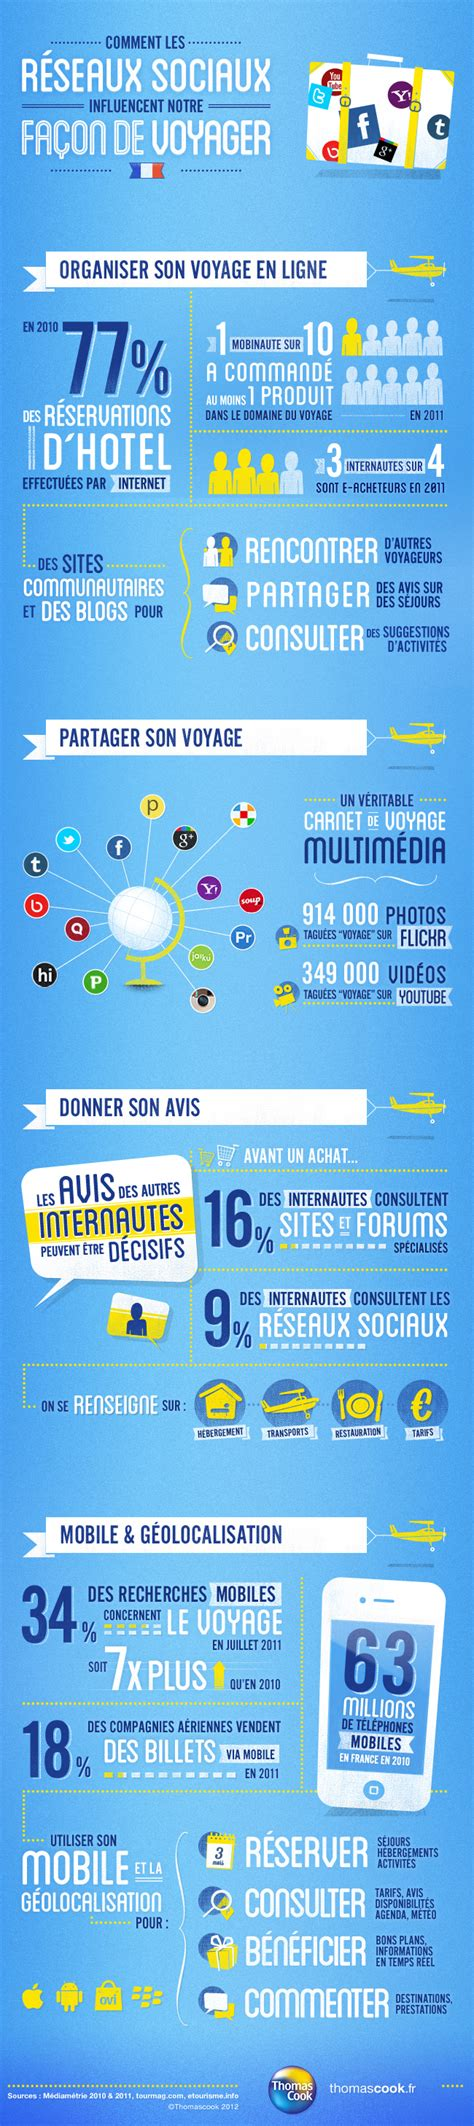 si鑒es sociaux lyon infographies alcimia cabinet conseil digital marketing